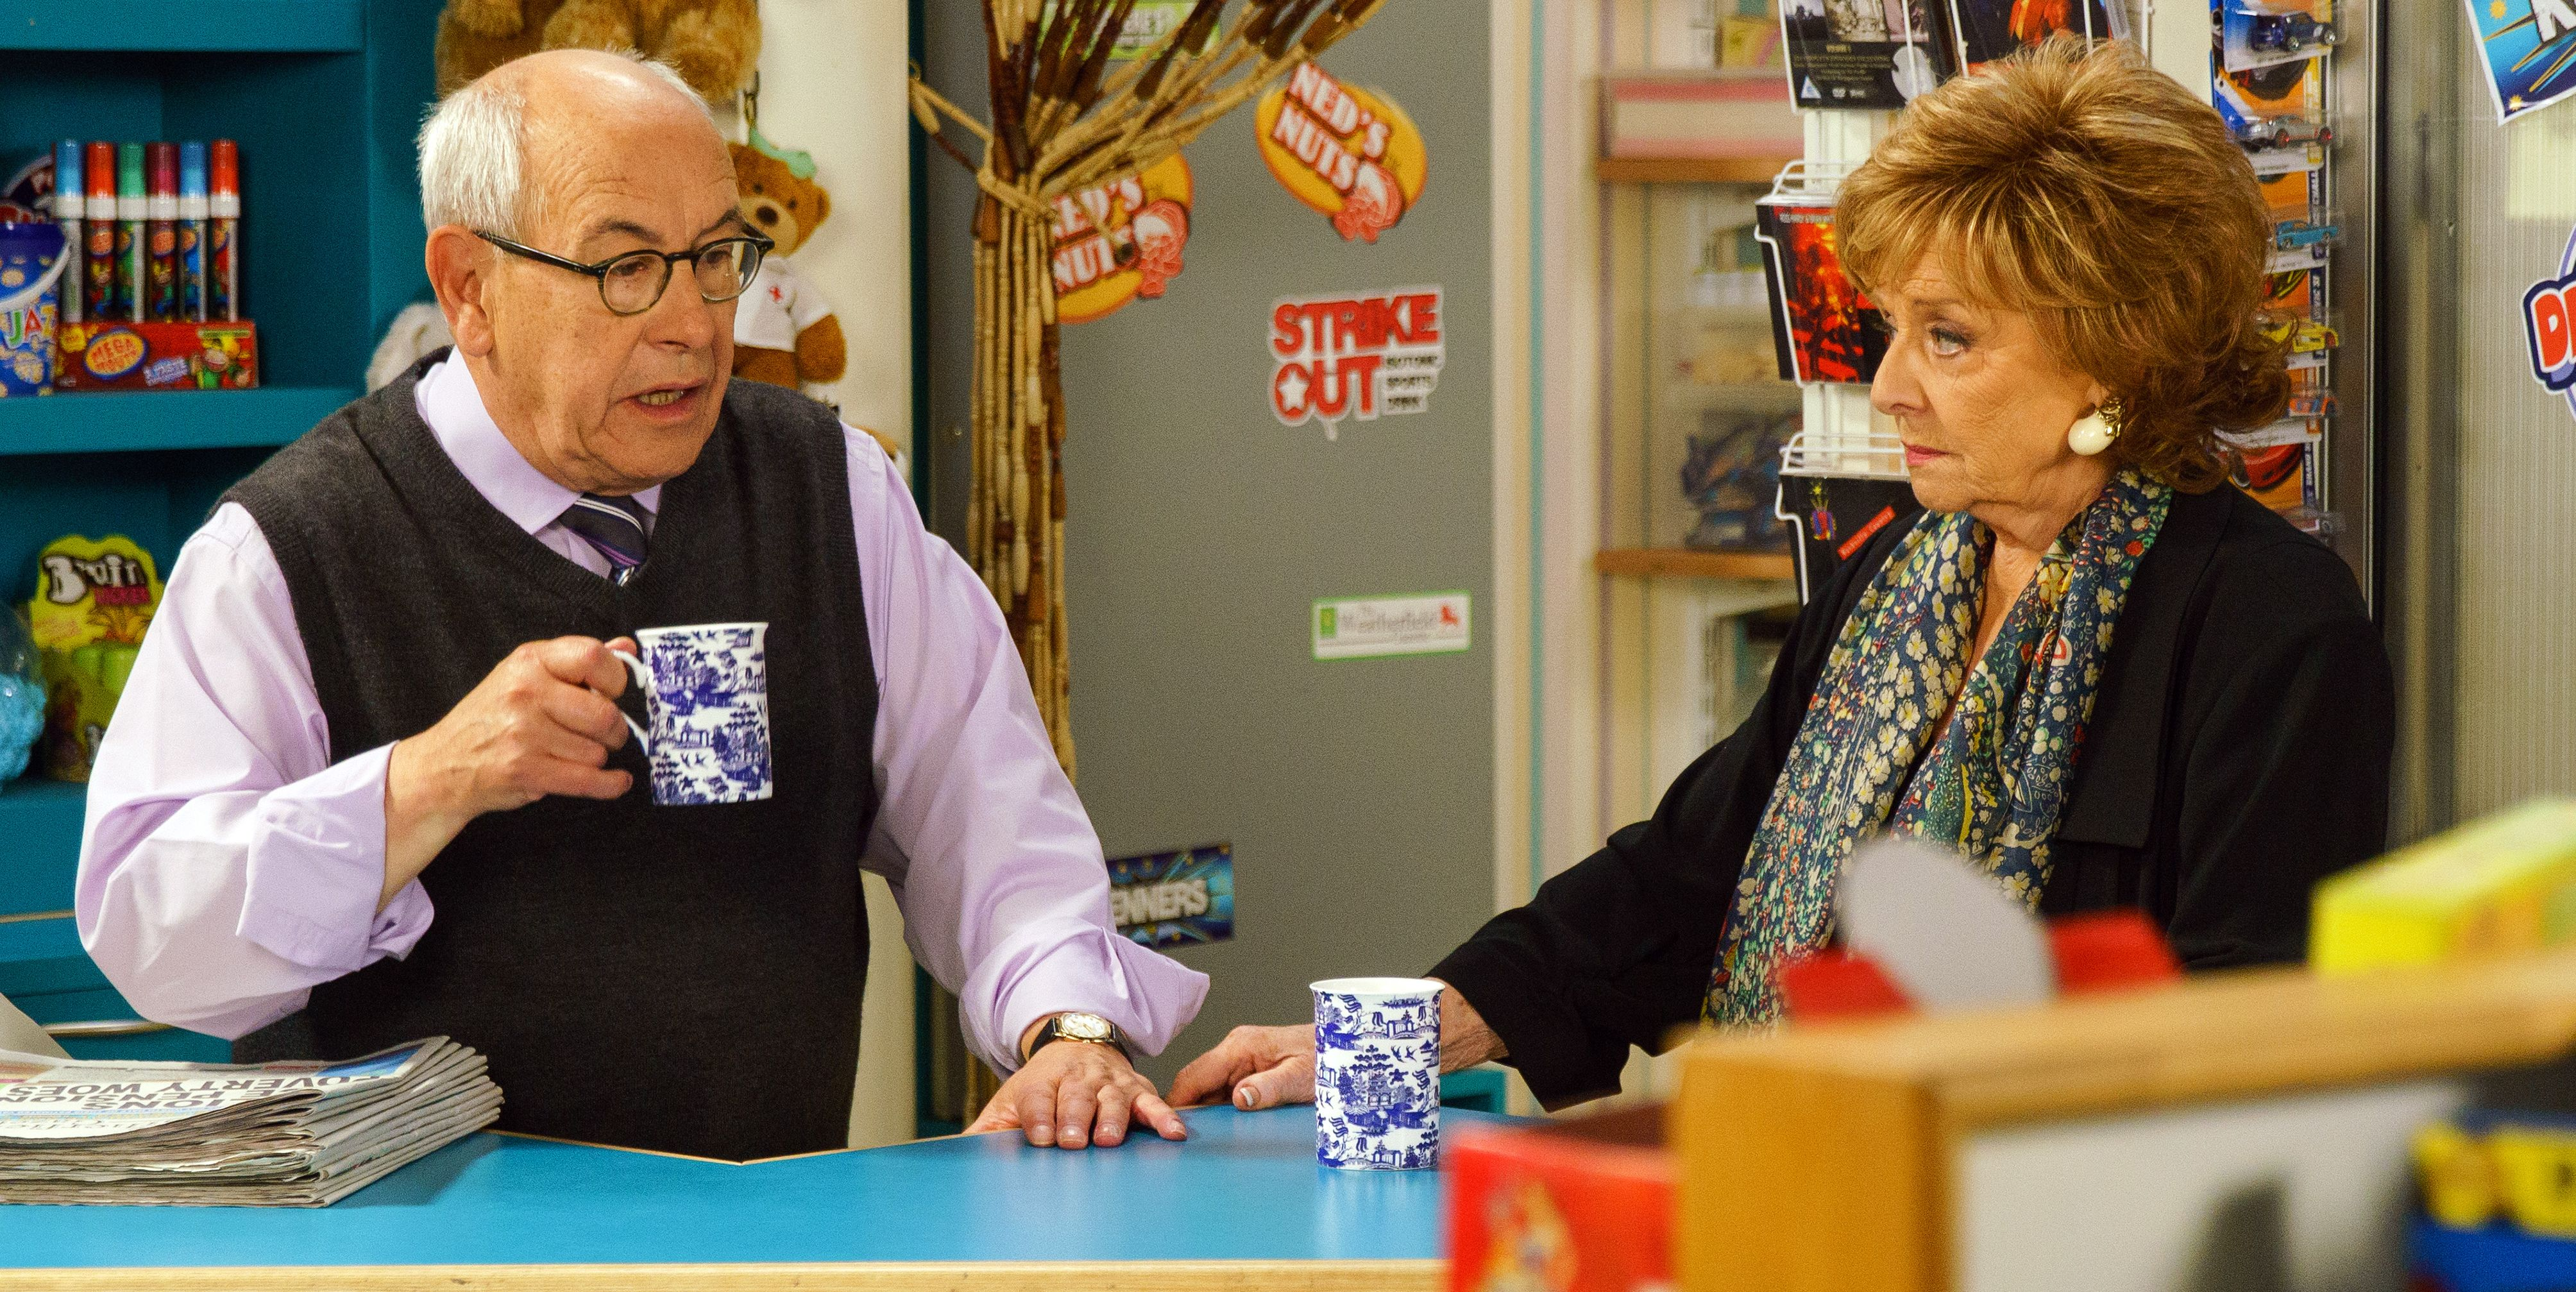 Rita Tanner confides in Norris Cole about her memory problems in Coronation Street